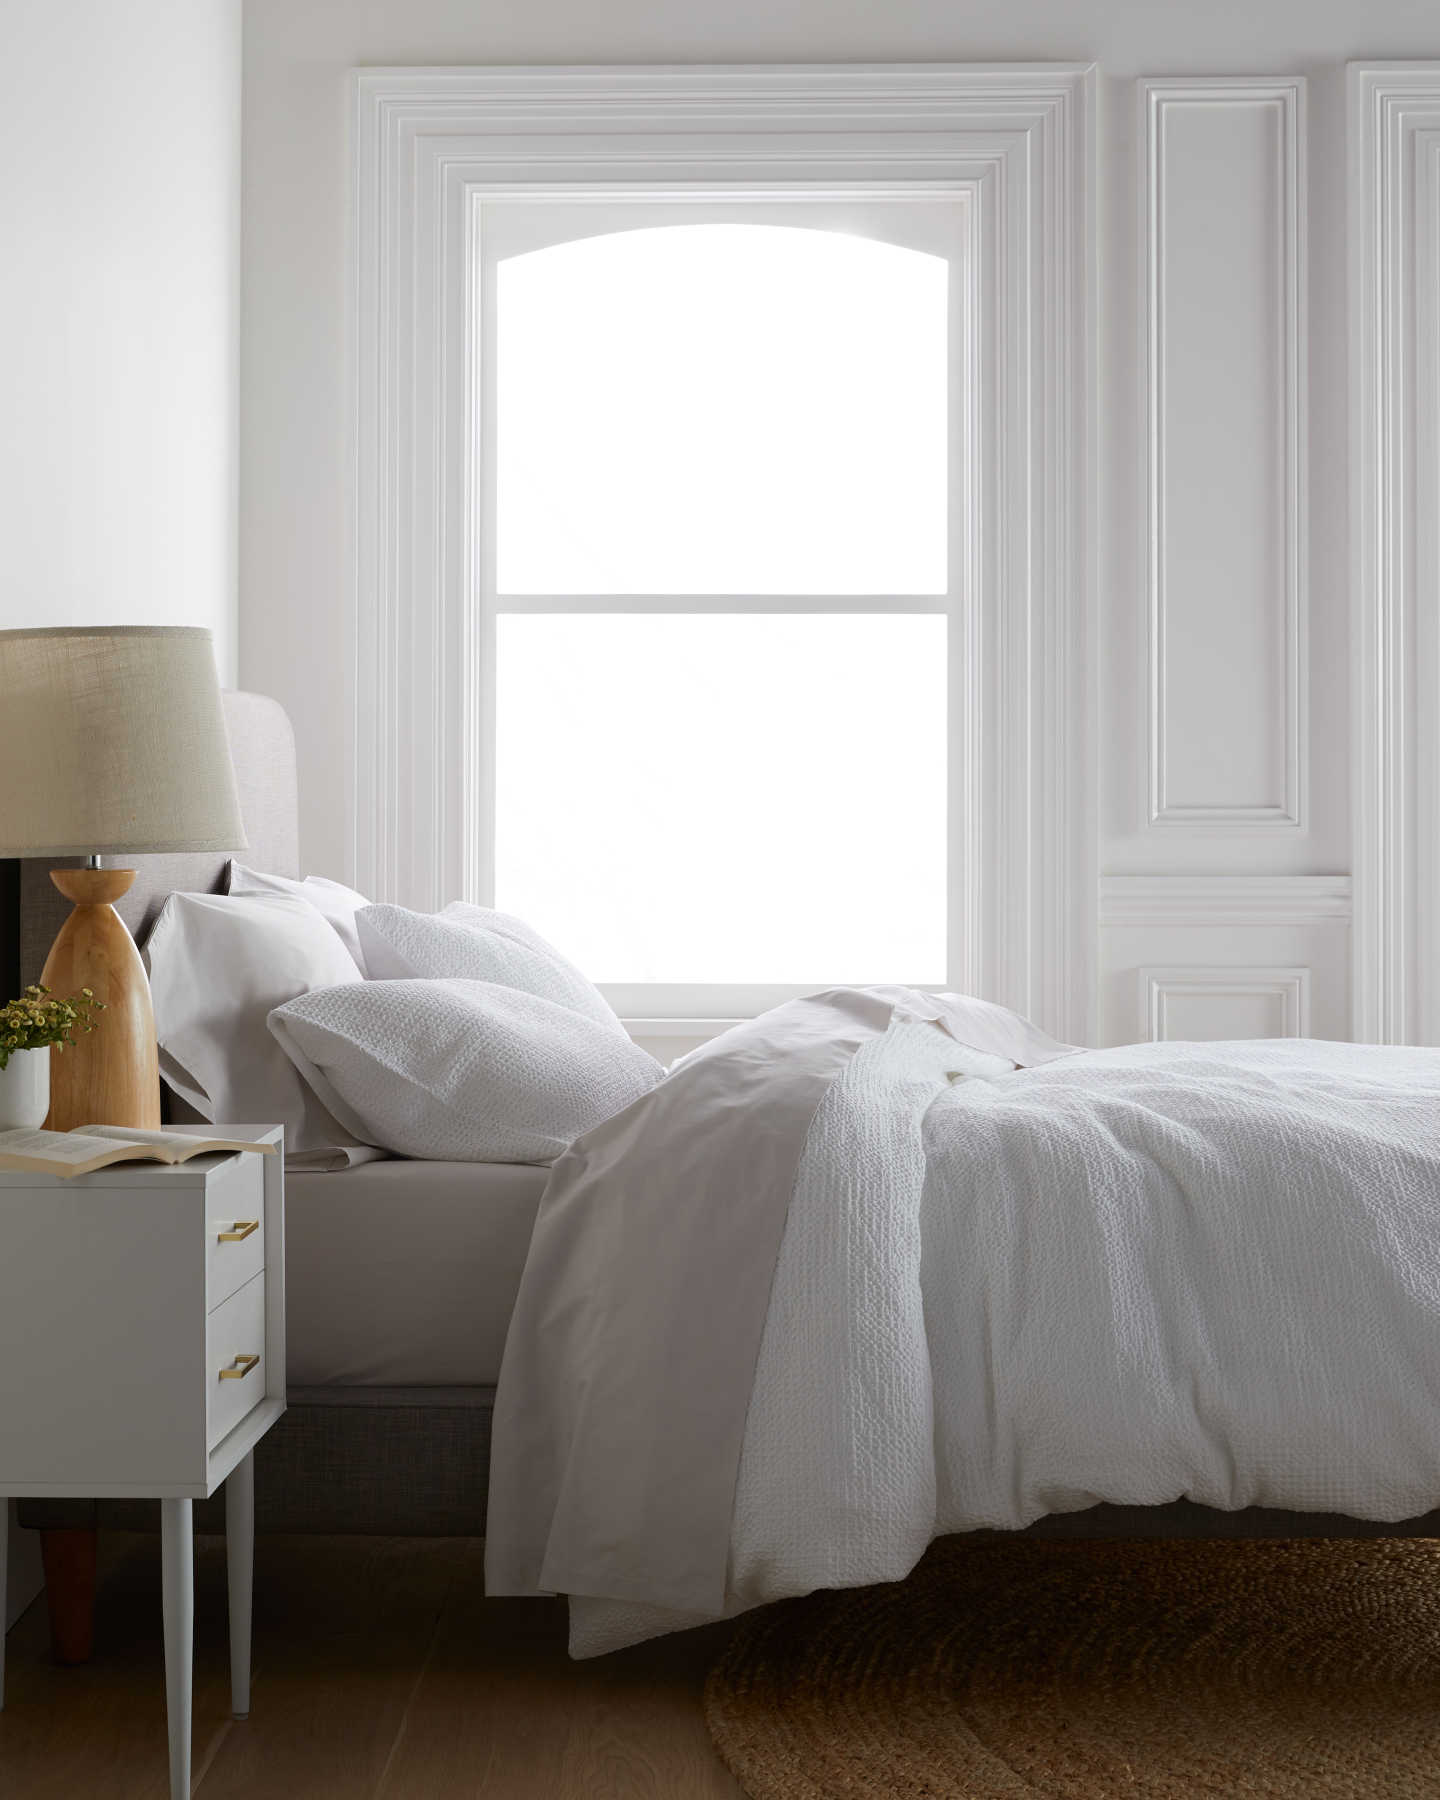 White waffle duvet cover set on bed from side